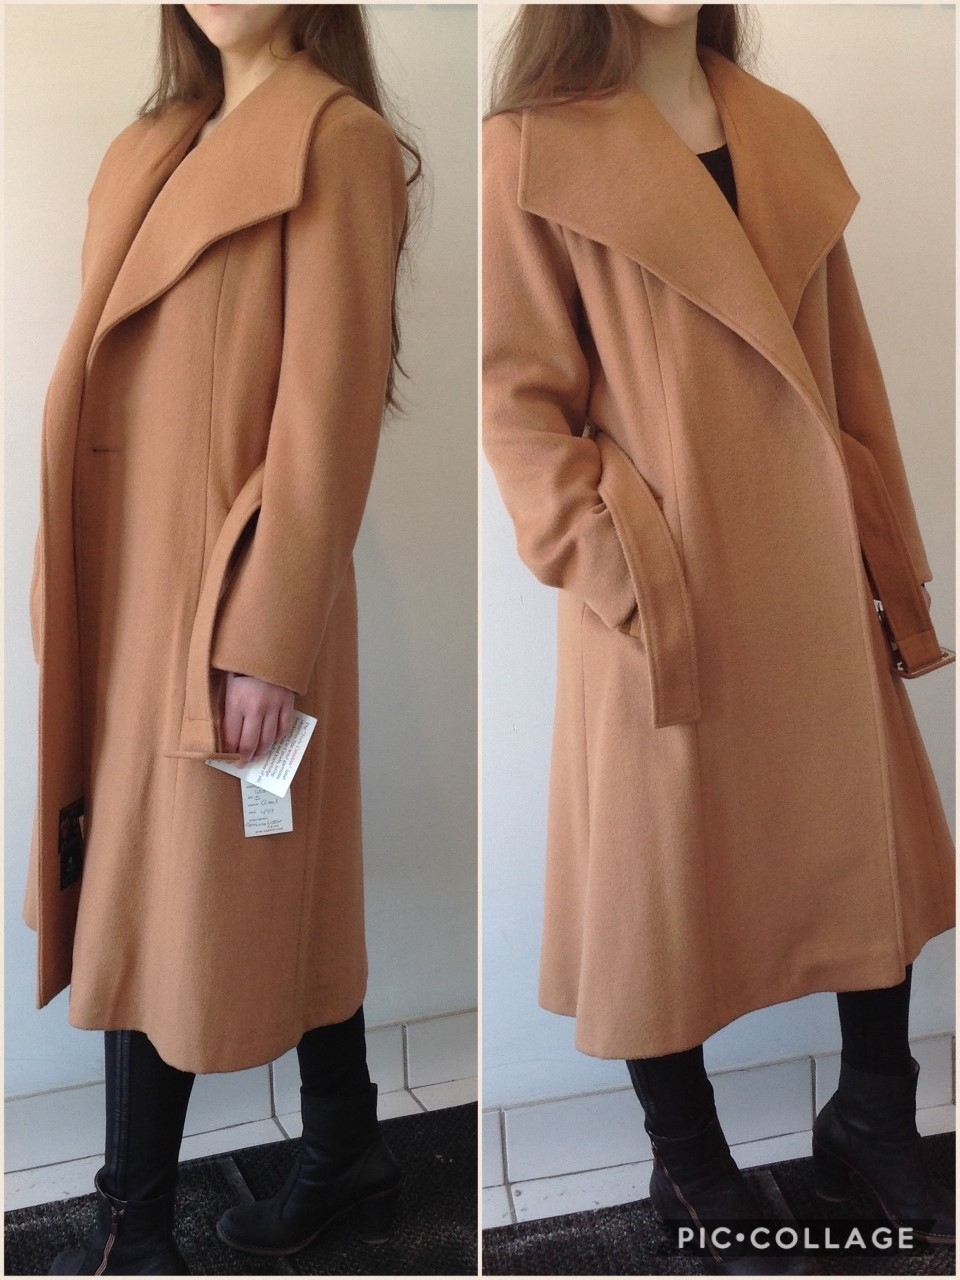 Style # 4403 -Camel Side View Cashmere/Wool